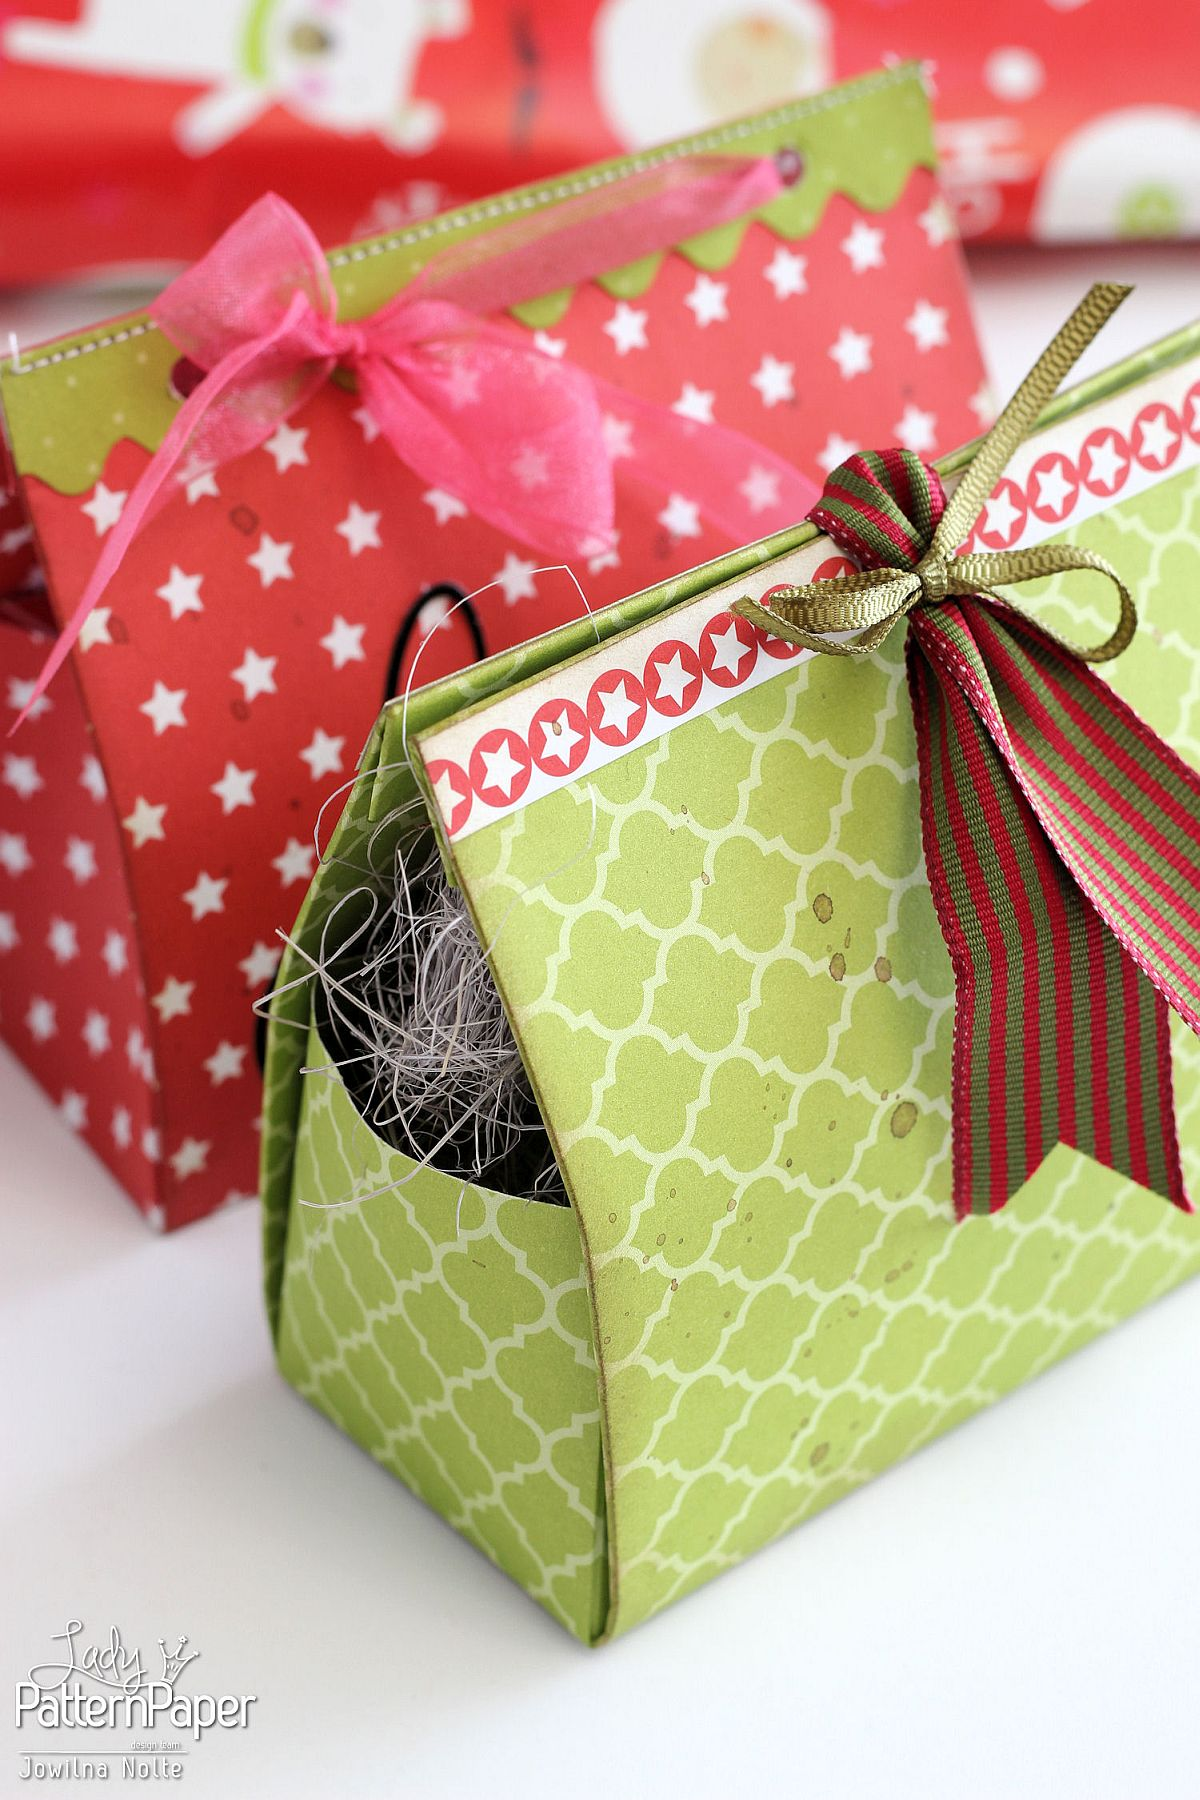 Cheerful and festive Christmas DIY Gift Boxes